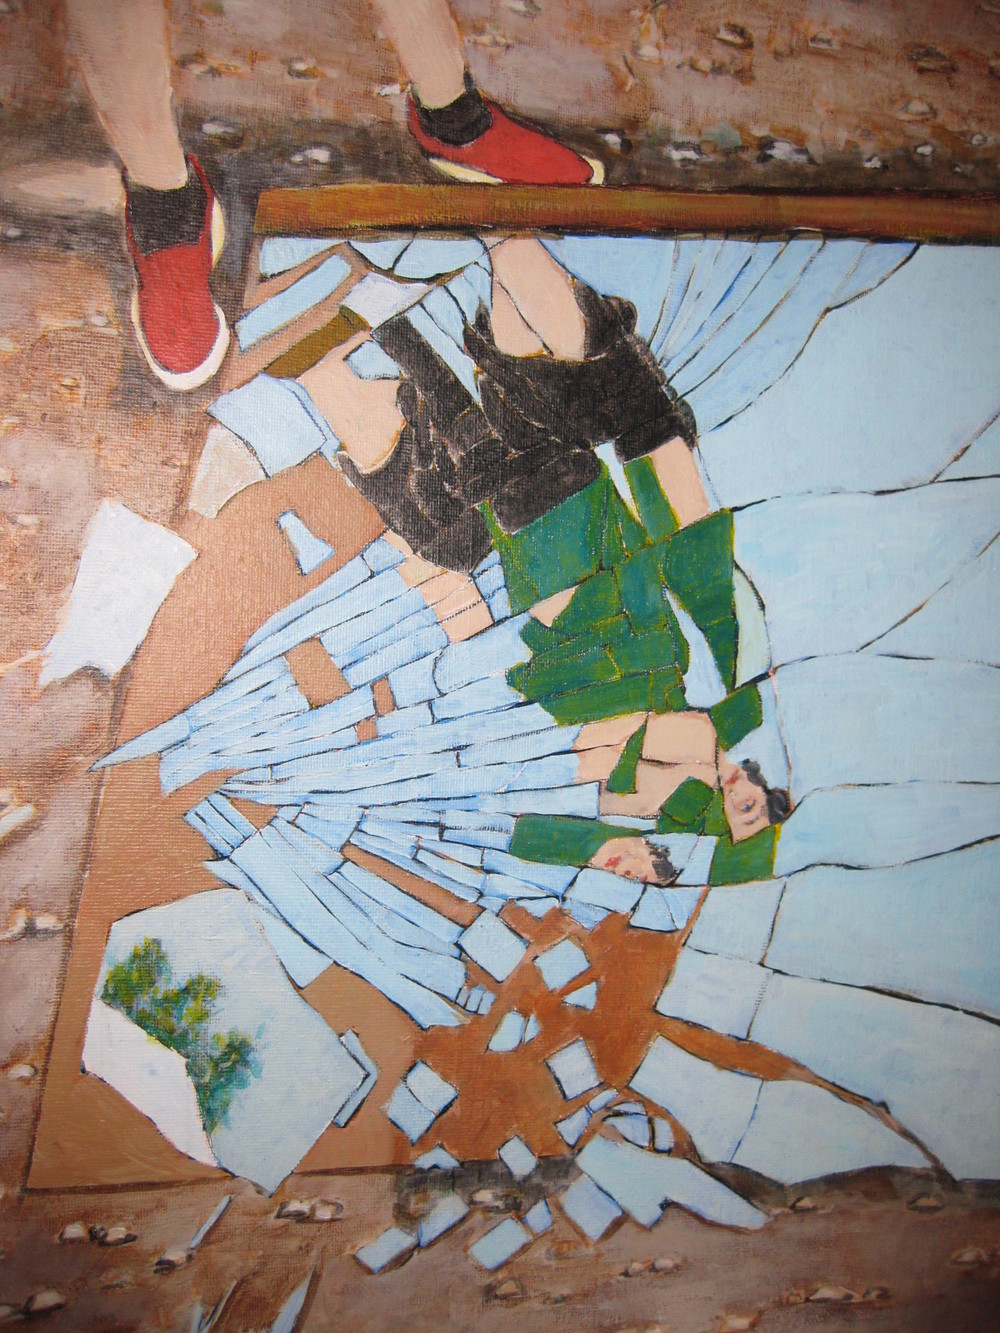 Self Portrait, Shattered Glass #2